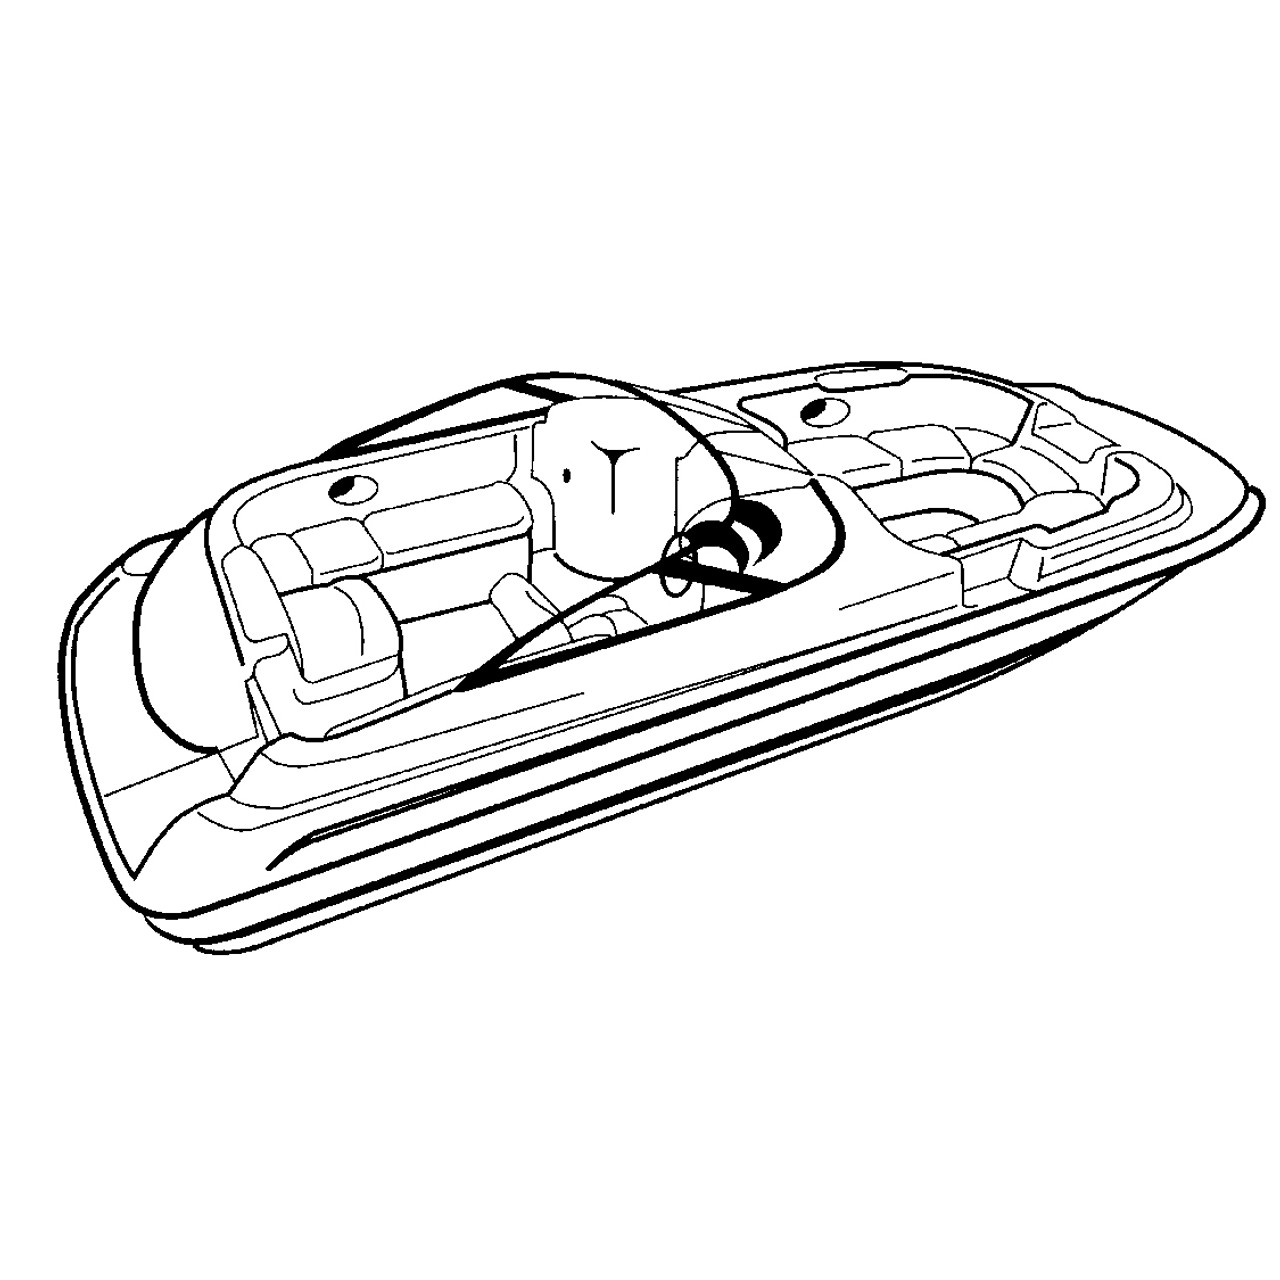 small resolution of cover fits deck boat with walk thru windshield or side console